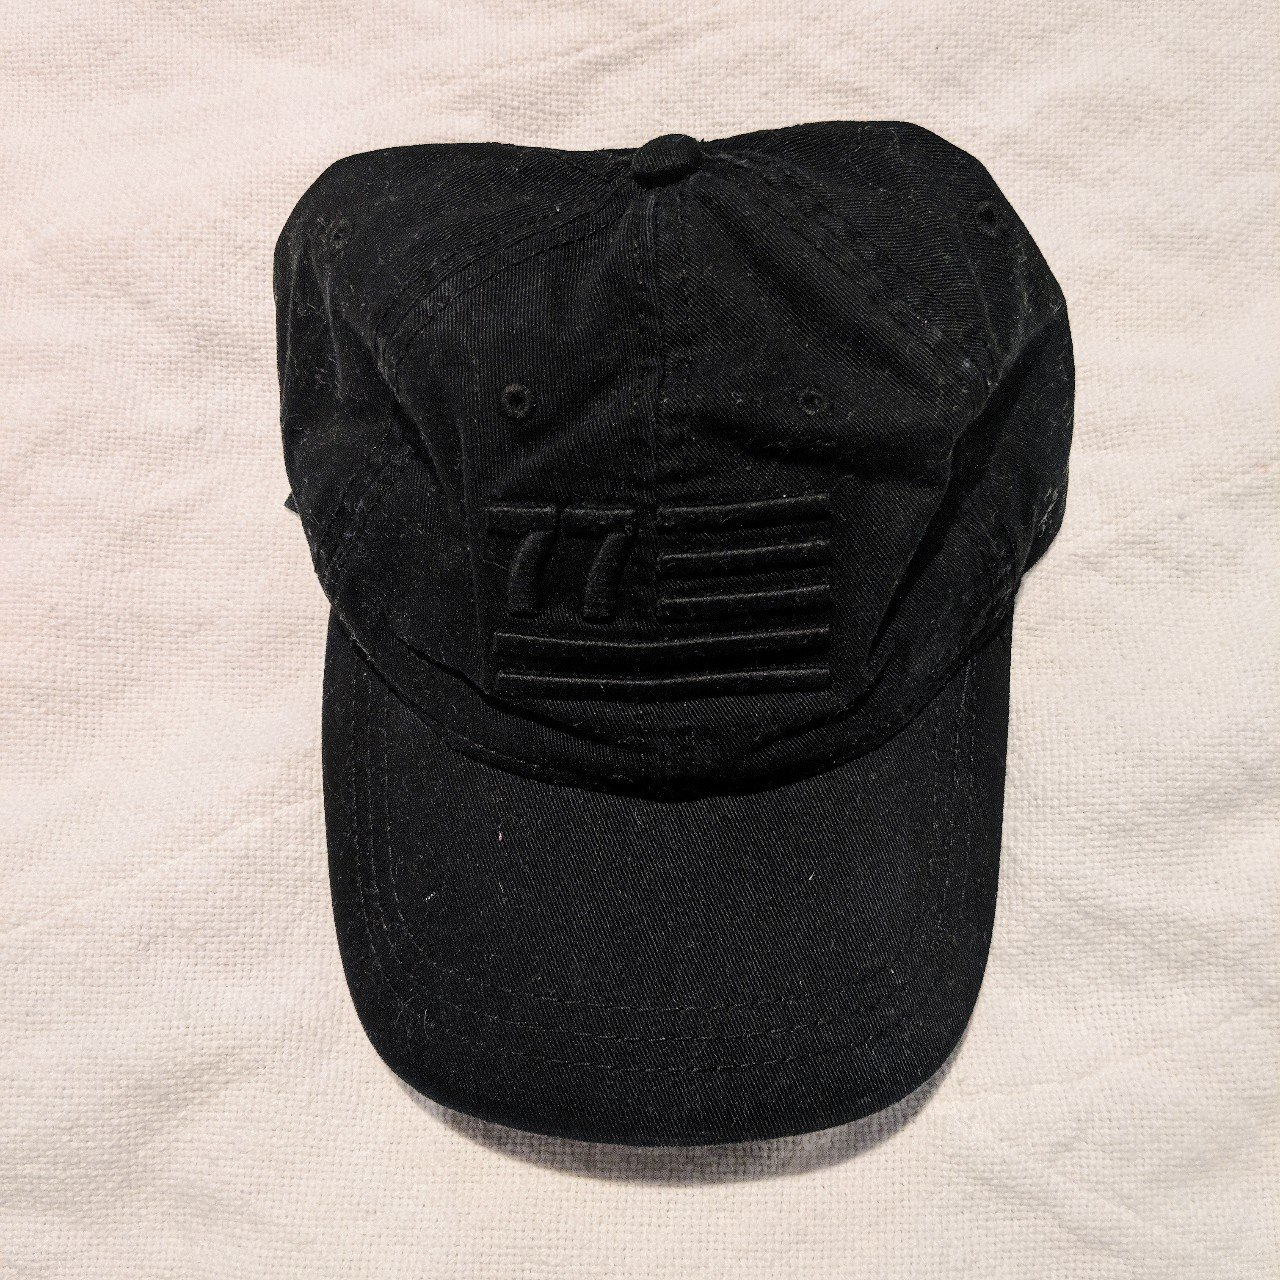 Black American Eagle Hat Shipping  4.50 black hat - Depop 7c11afc6bbf9